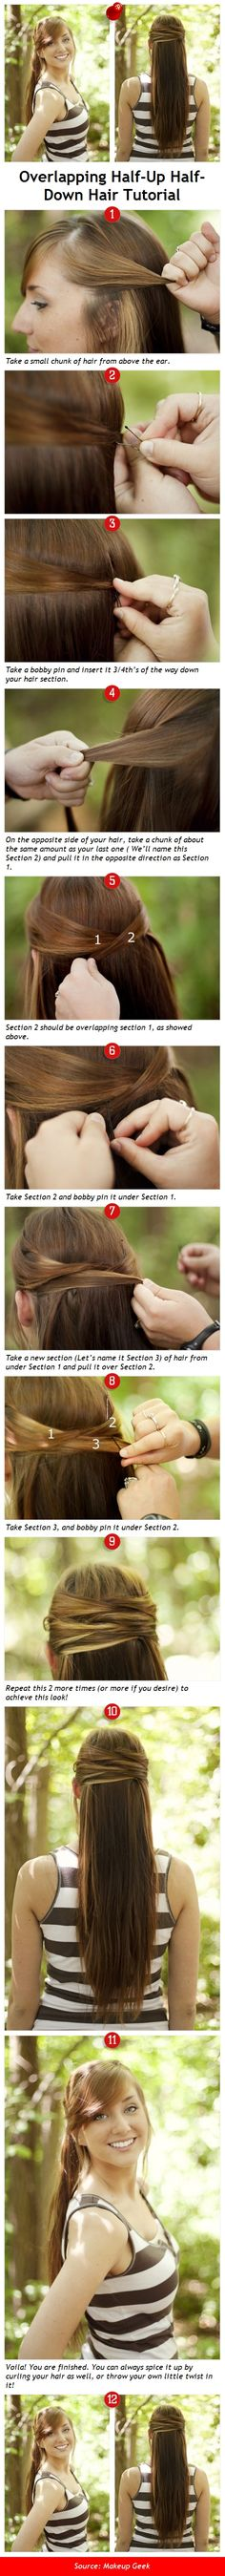 Waterfall/Overlapping Half-Up Half-Down Hair Tutorial - First time I did this it looked great! Everyone loved my hair! Couldn't do it again!!